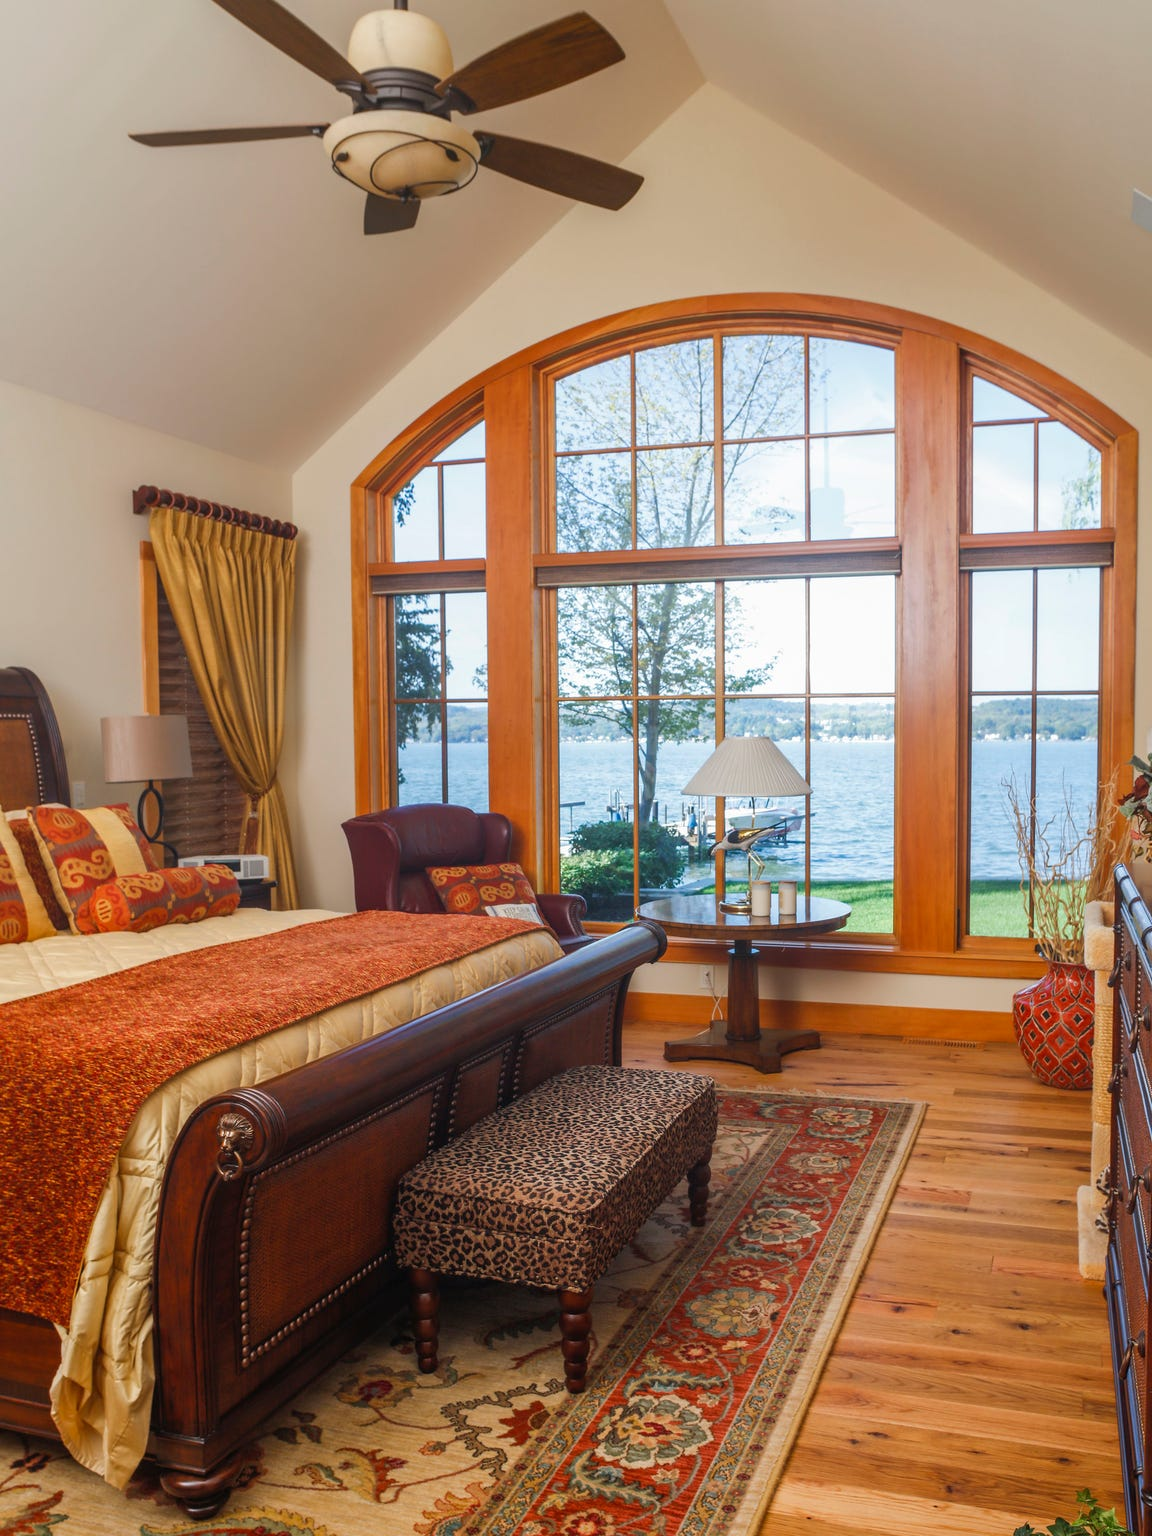 Special attention is paid to taking advantage of the stunning lake views.